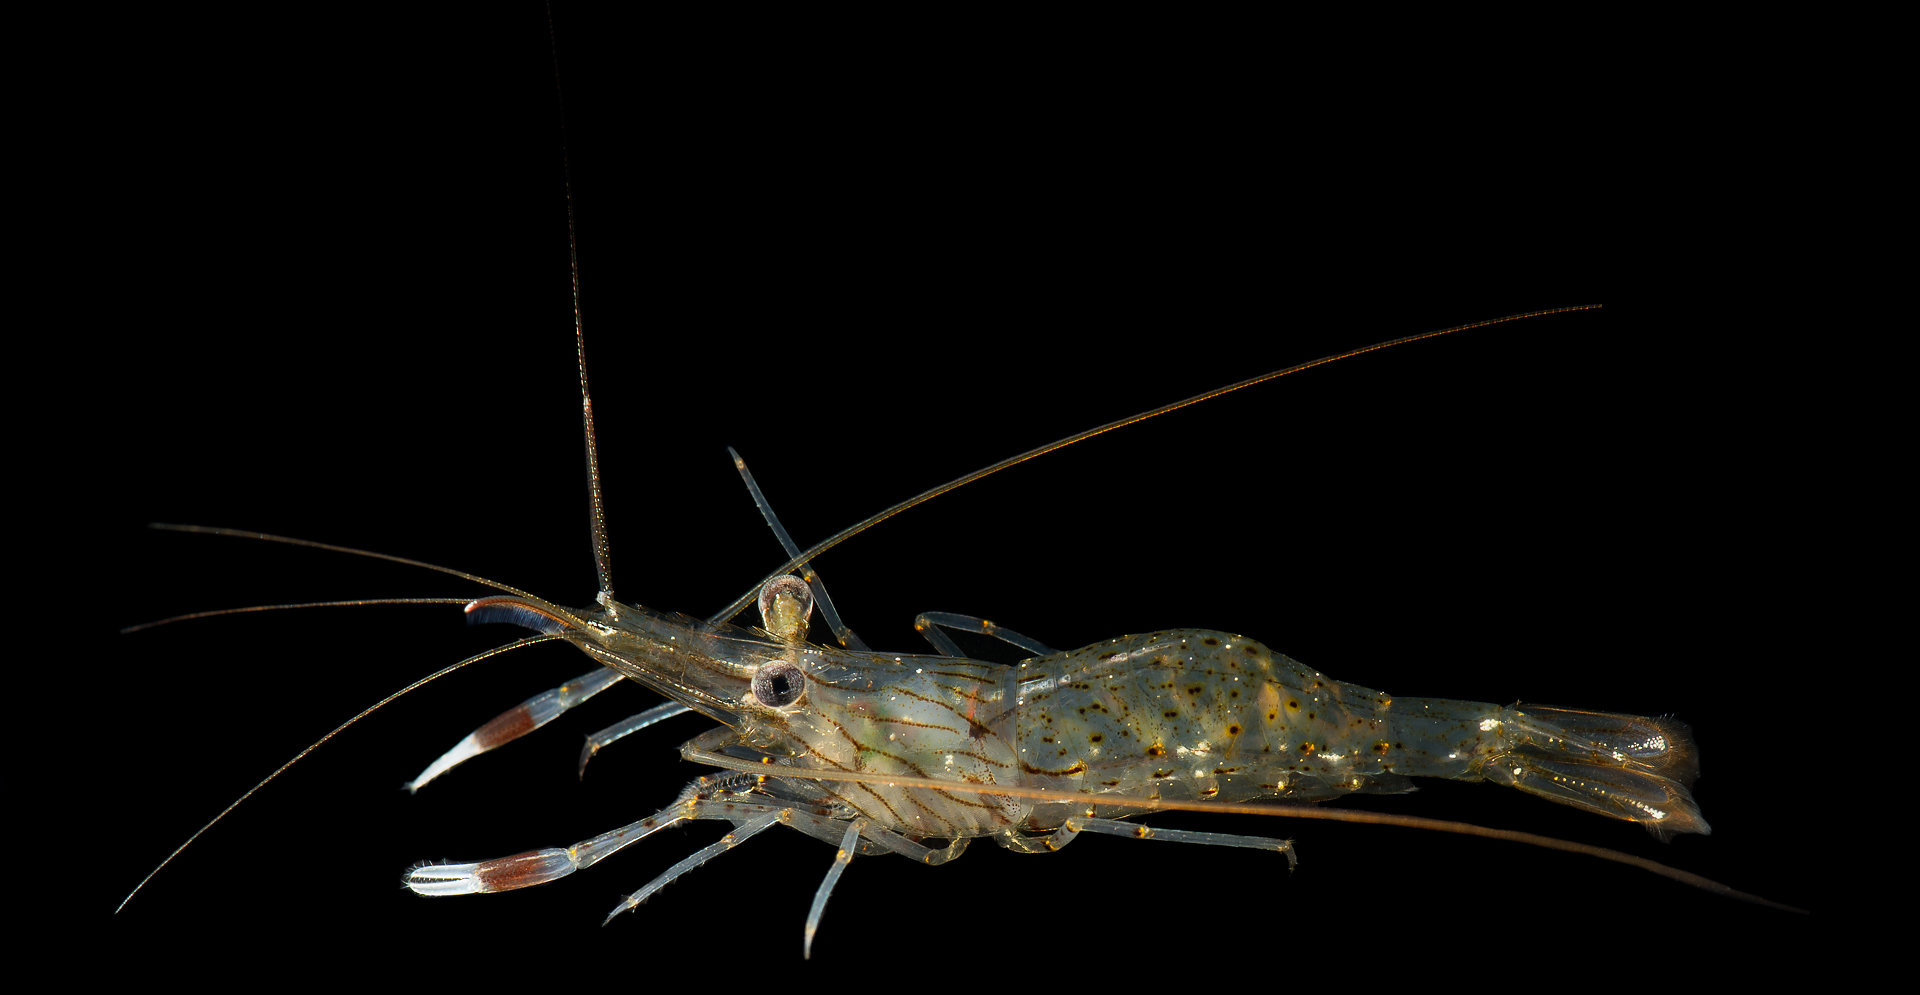 Palaemon serenus, Rock-pool shrimp, Mallacoota Bush Blitz